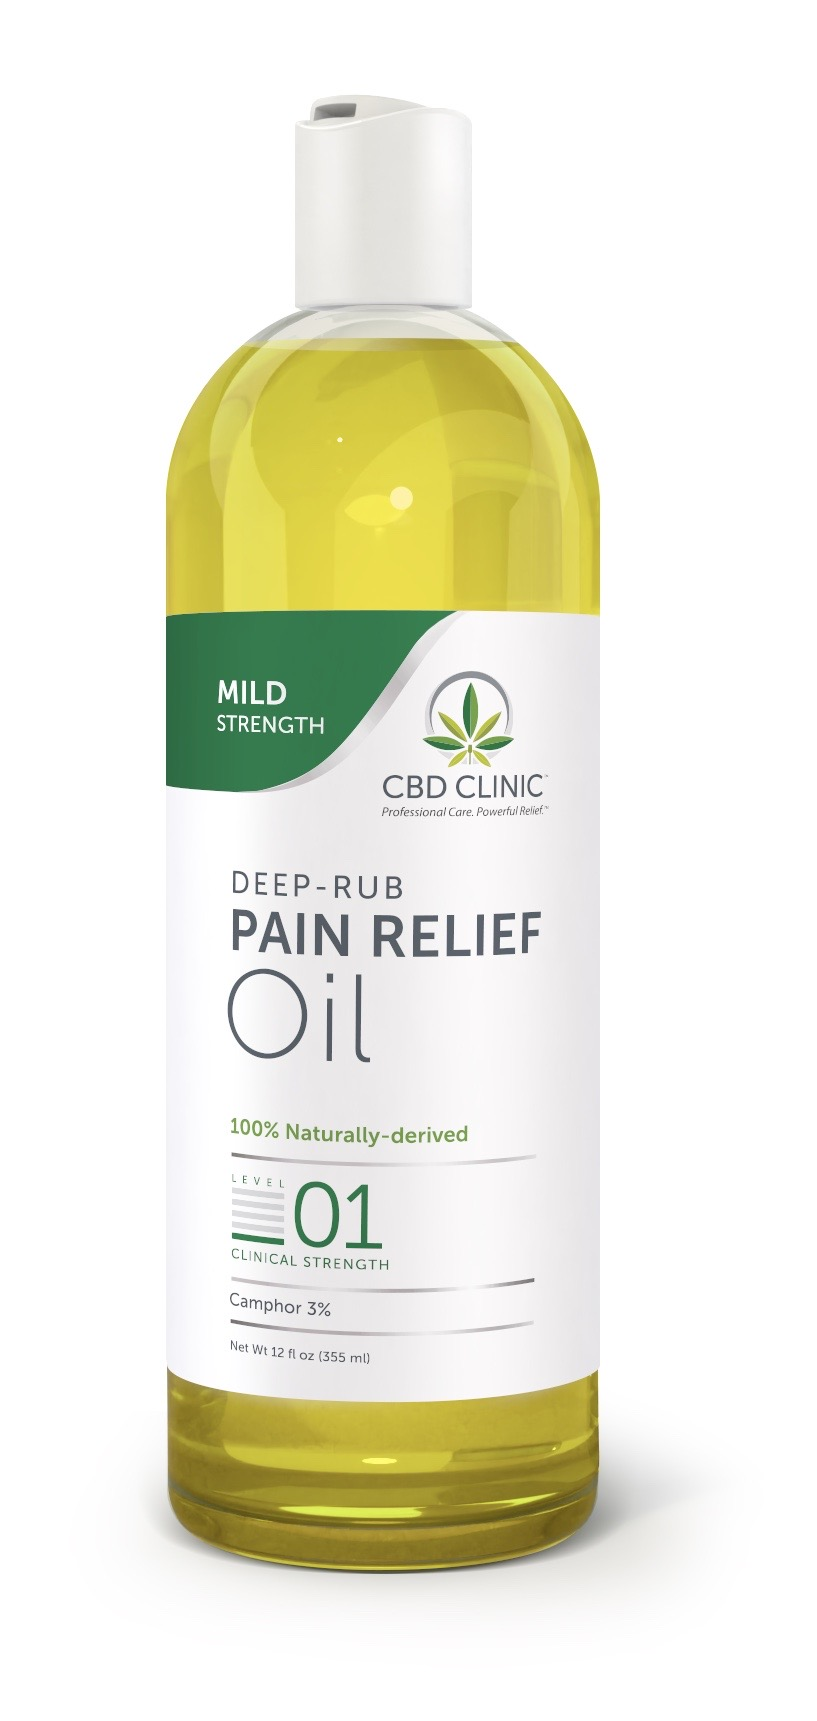 Clinical Strength Pain Relief Oil- Level 1